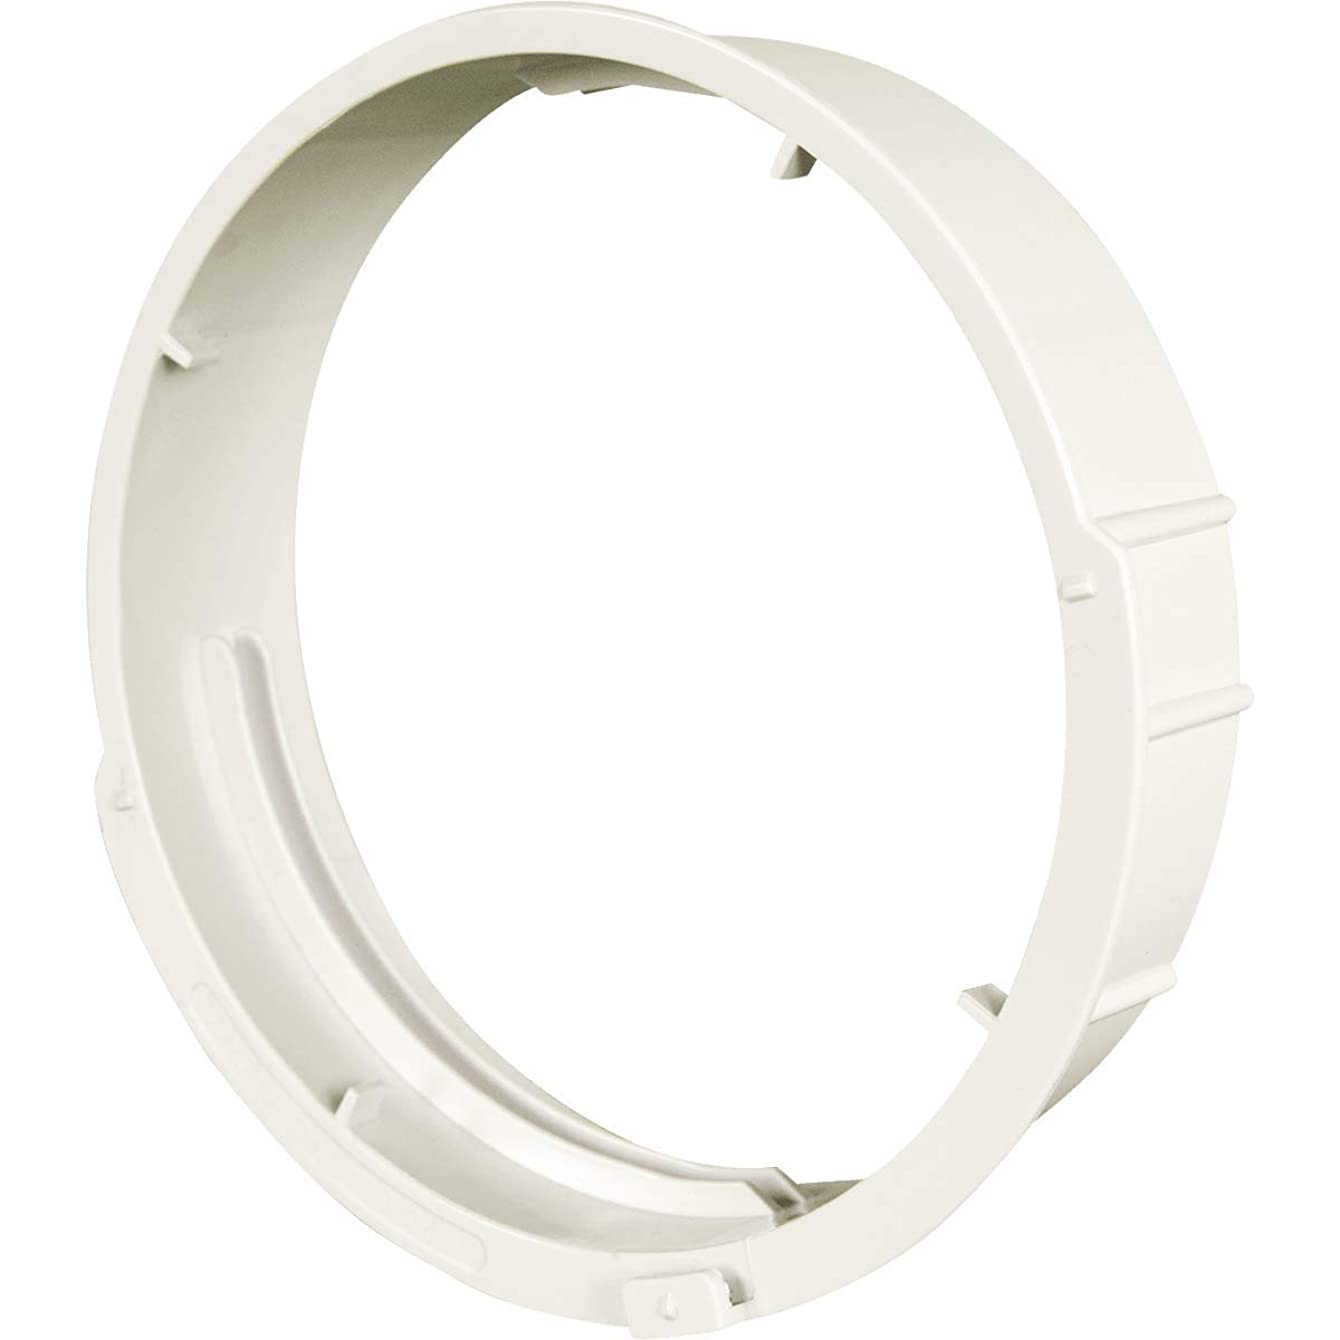 Honeywell Exhaust Hose Adapter for HL Series Portable Air Conditioners (11320100020)